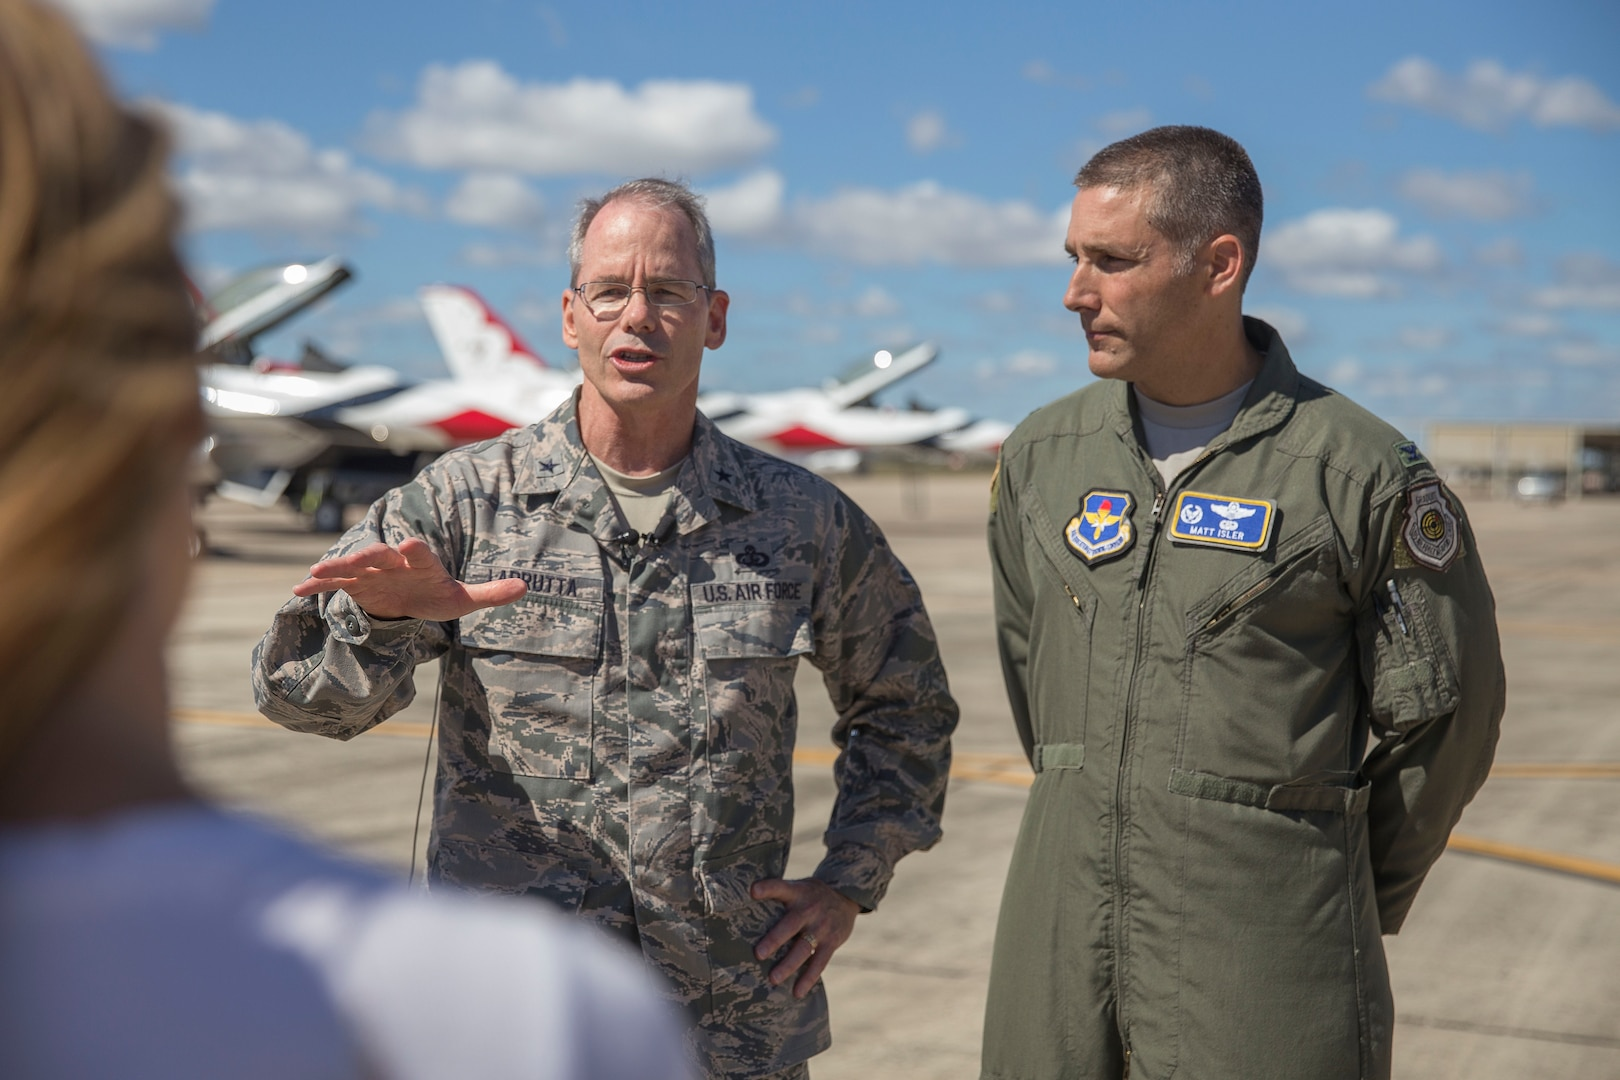 Brig. Gen. Bob Labrutta,502nd Air Base Wing and Joint Base San Antonio commander and Col. Mathew Isler, 12th Flying Training Wing commander, answer questions from the media at Joint Base San Antonio-Randolph prior to the 2015 Joint Base San Antonio Air Show and Open House Oct. 26, 2015.  Air shows allow the Air Force to display the capabilities of our aircraft to the American taxpayer through aerial demonstrations and static displays.  Randolph's air show allowed attendees to get up close and personal to see some of the equipment and aircraft used by the U.S. military today.